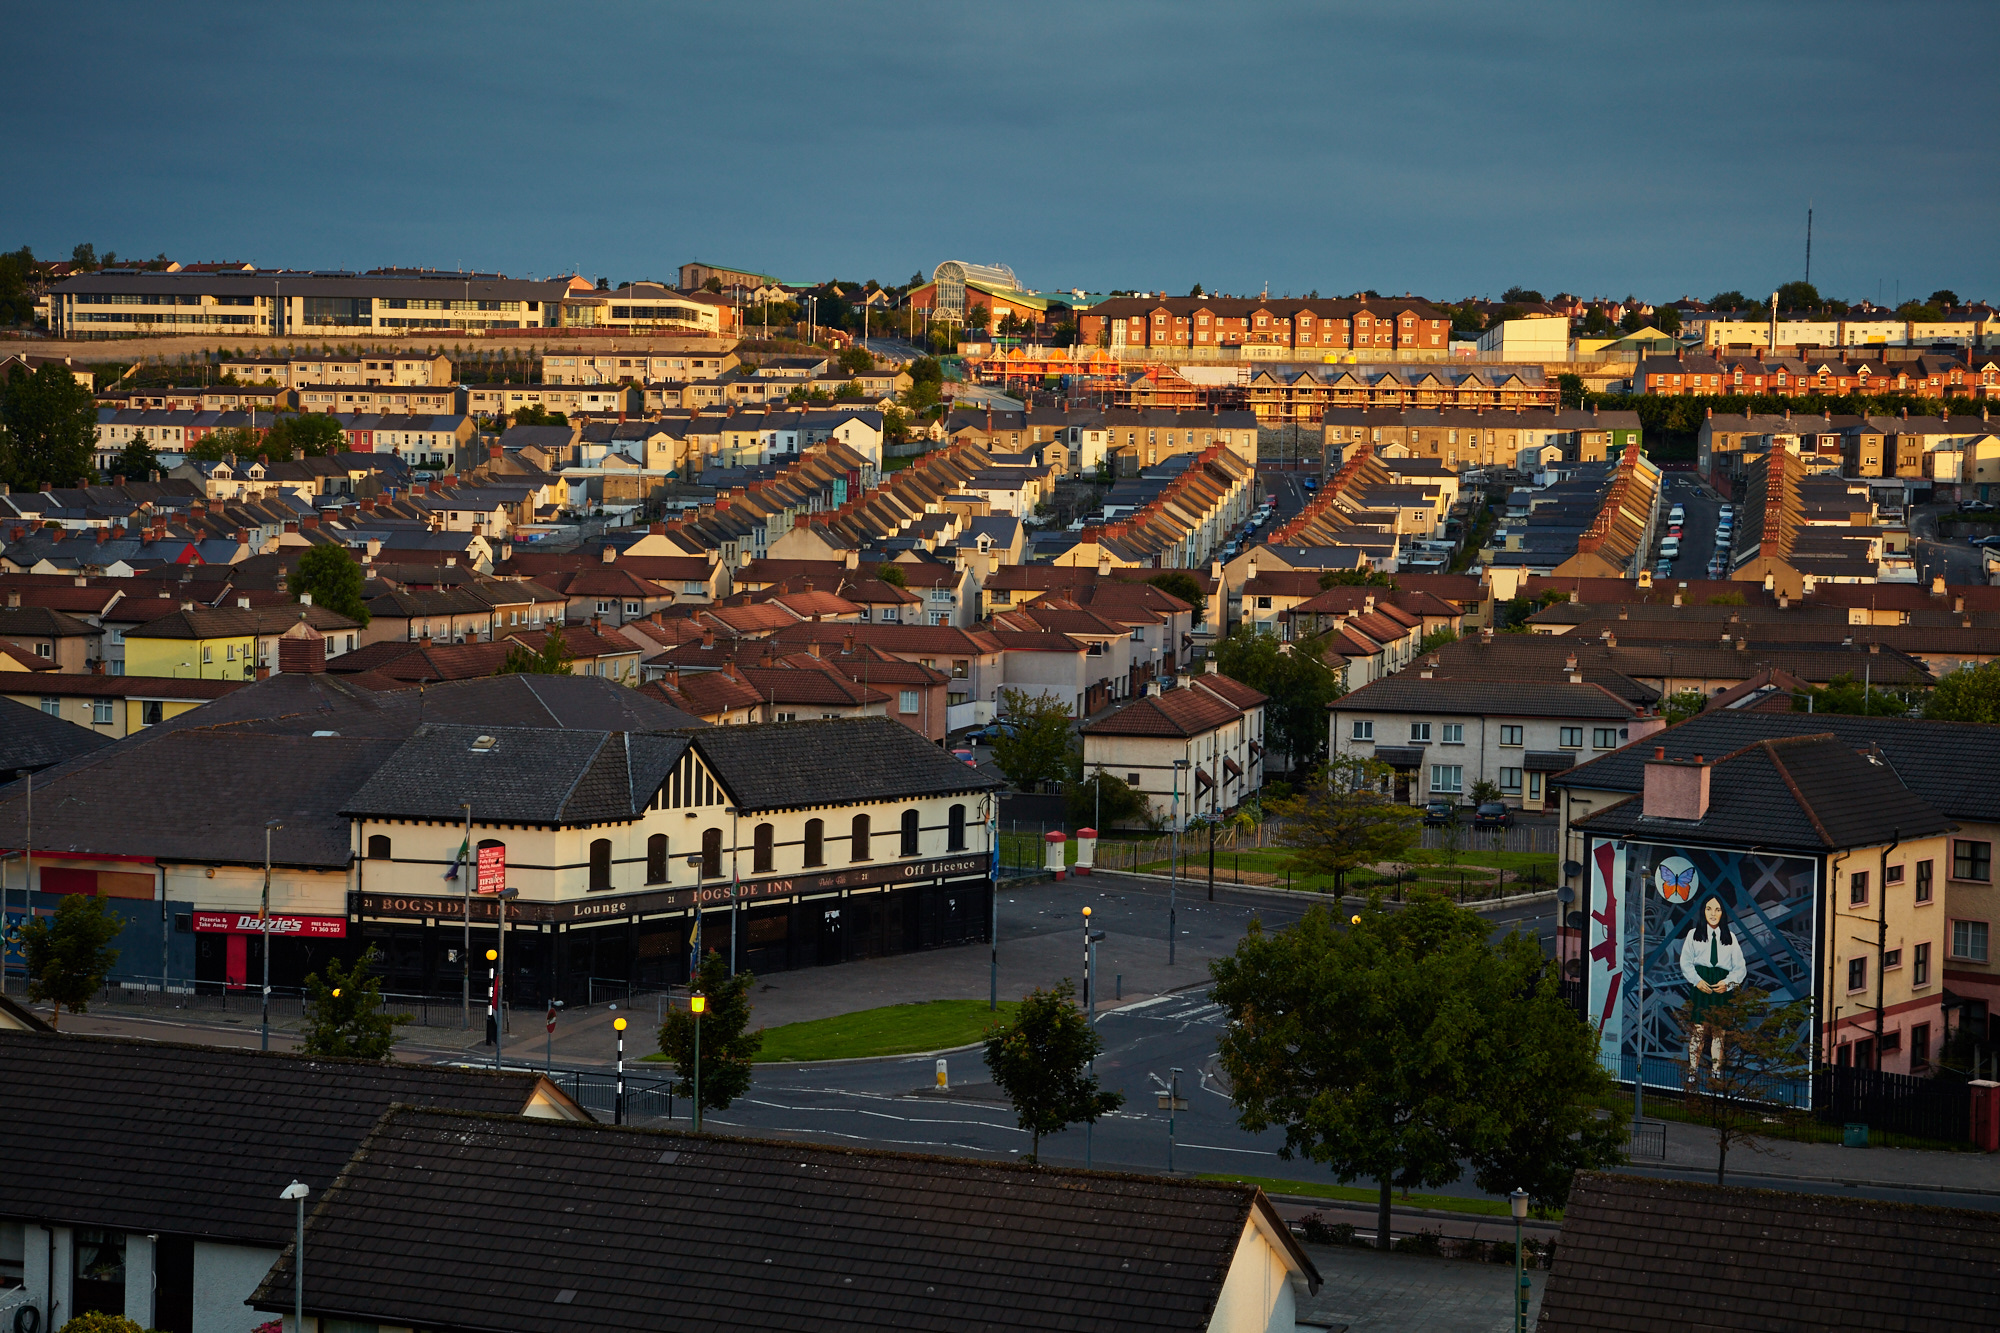 View of Bogside